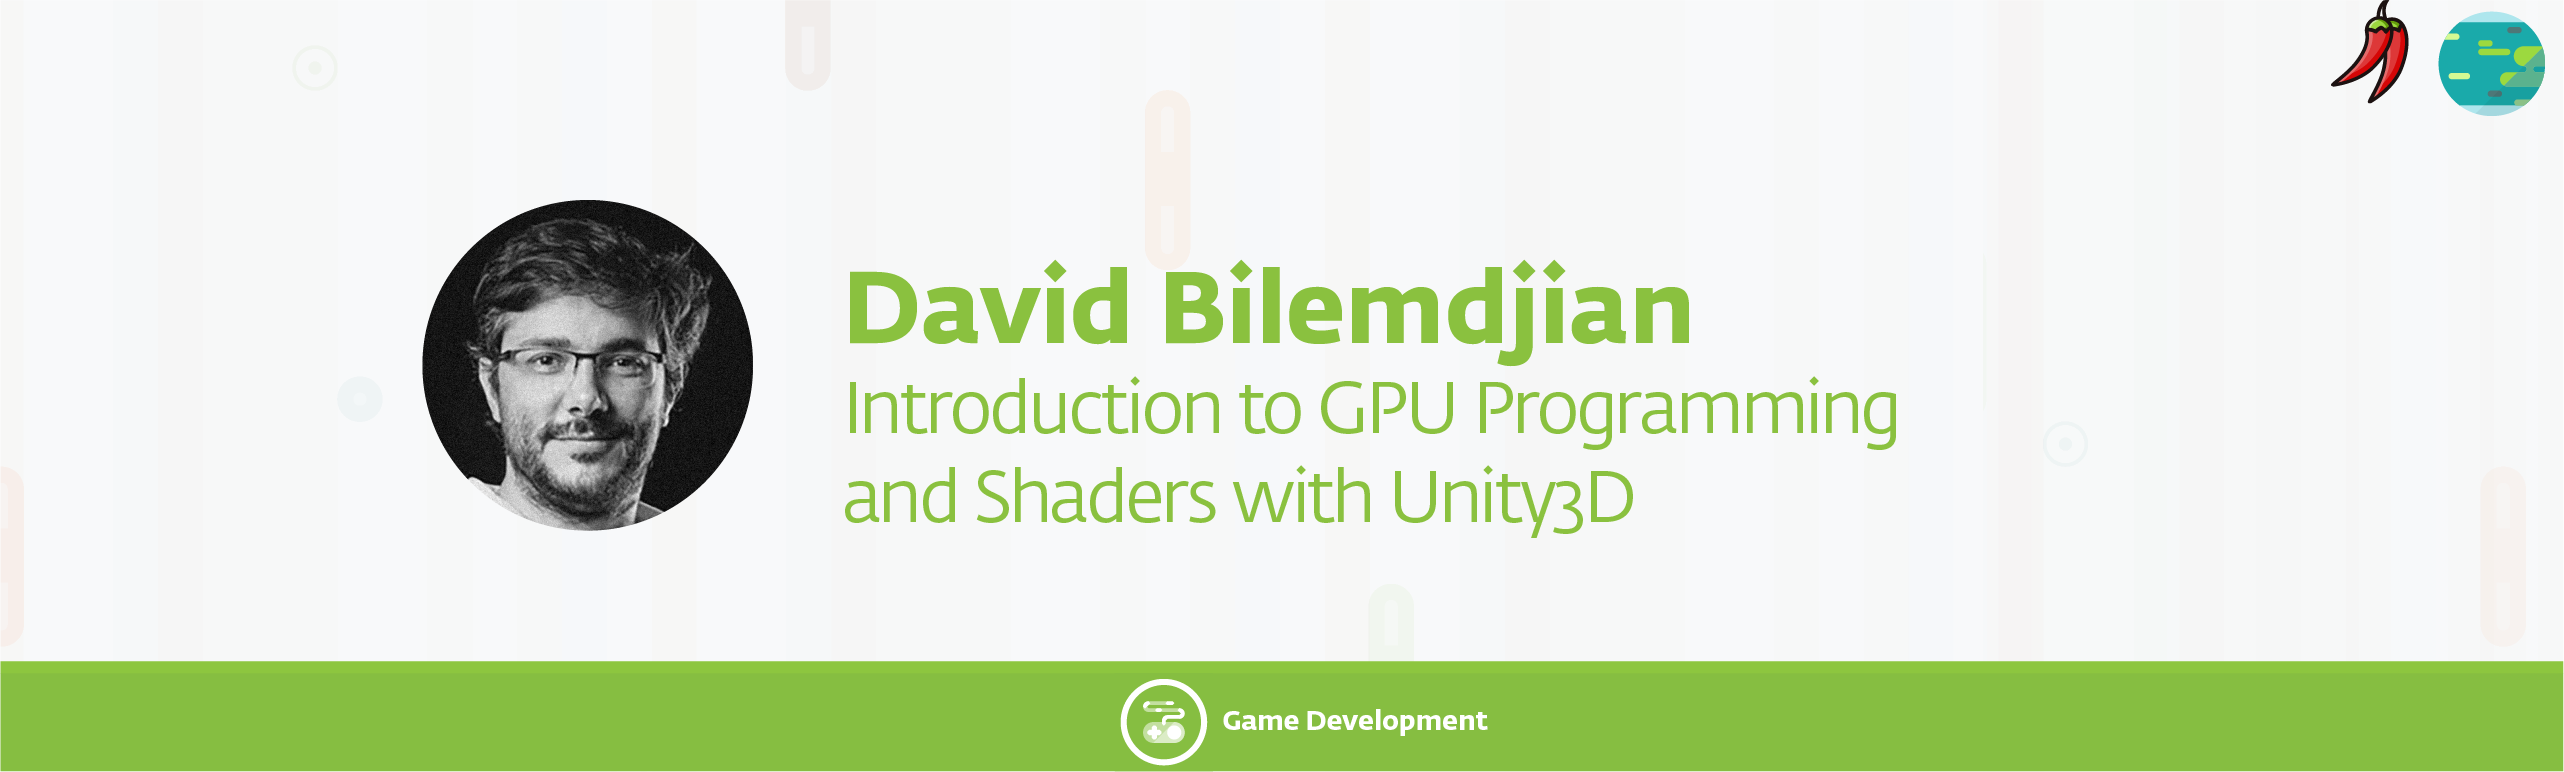 nor laber banner 23 - Introduction to GPU Programming and Shaders with Unity3D